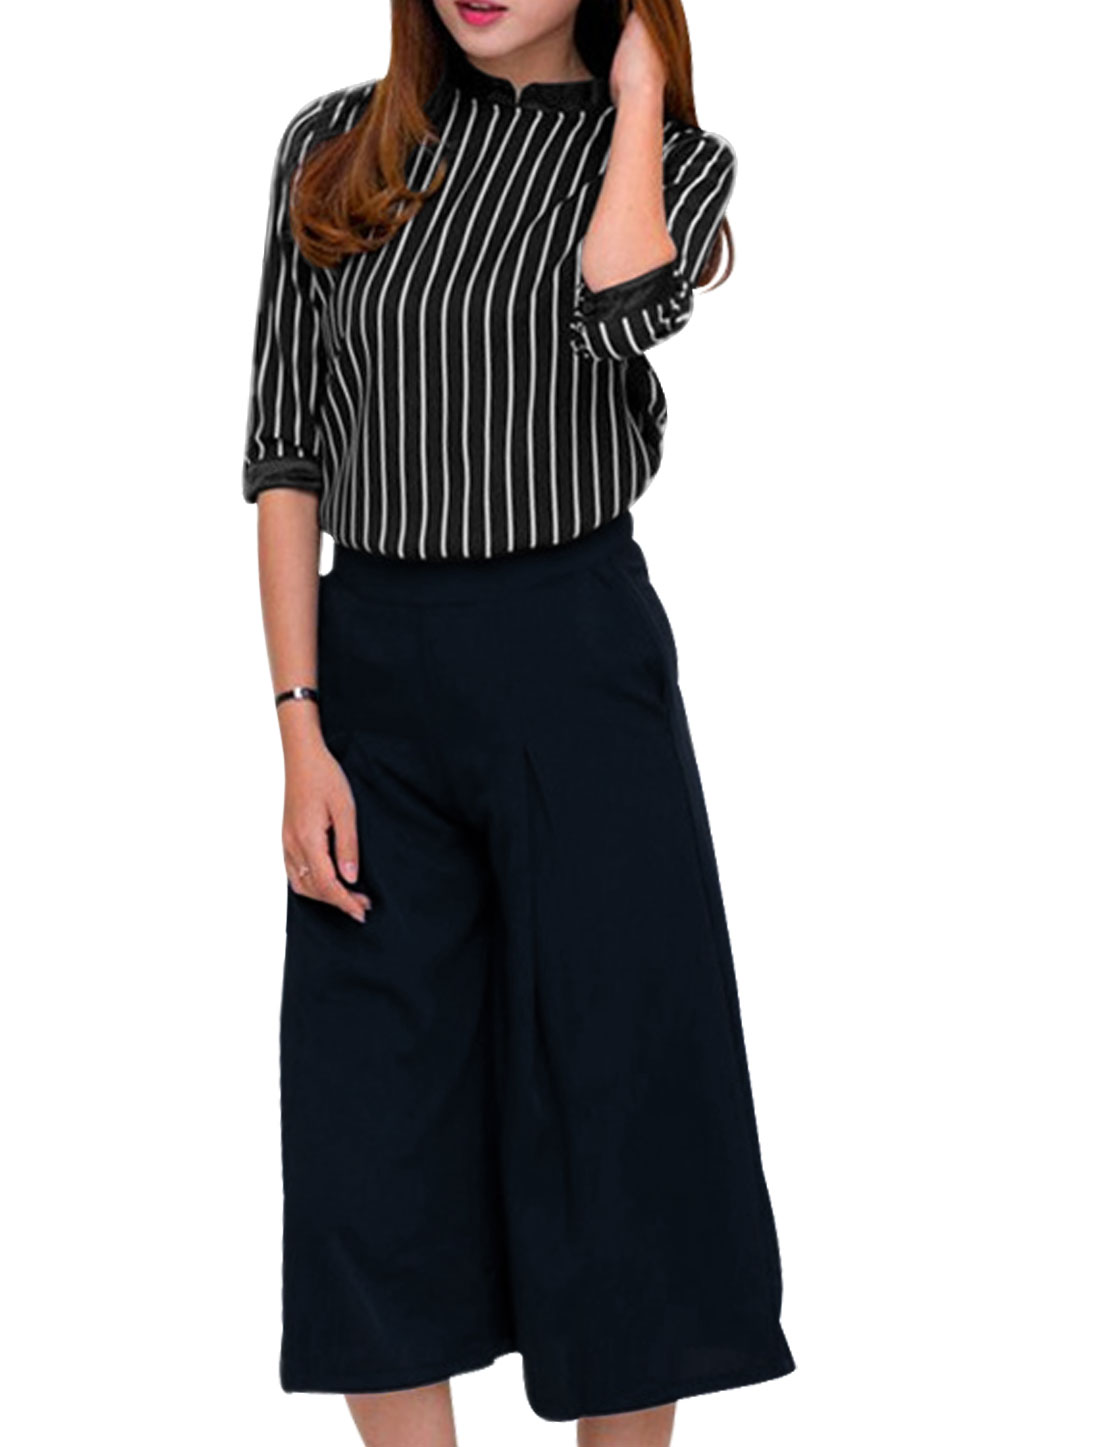 Woman Vertical Stripes Casual Top w Wide Leg Capris Pants Sets Black Dark Blue M